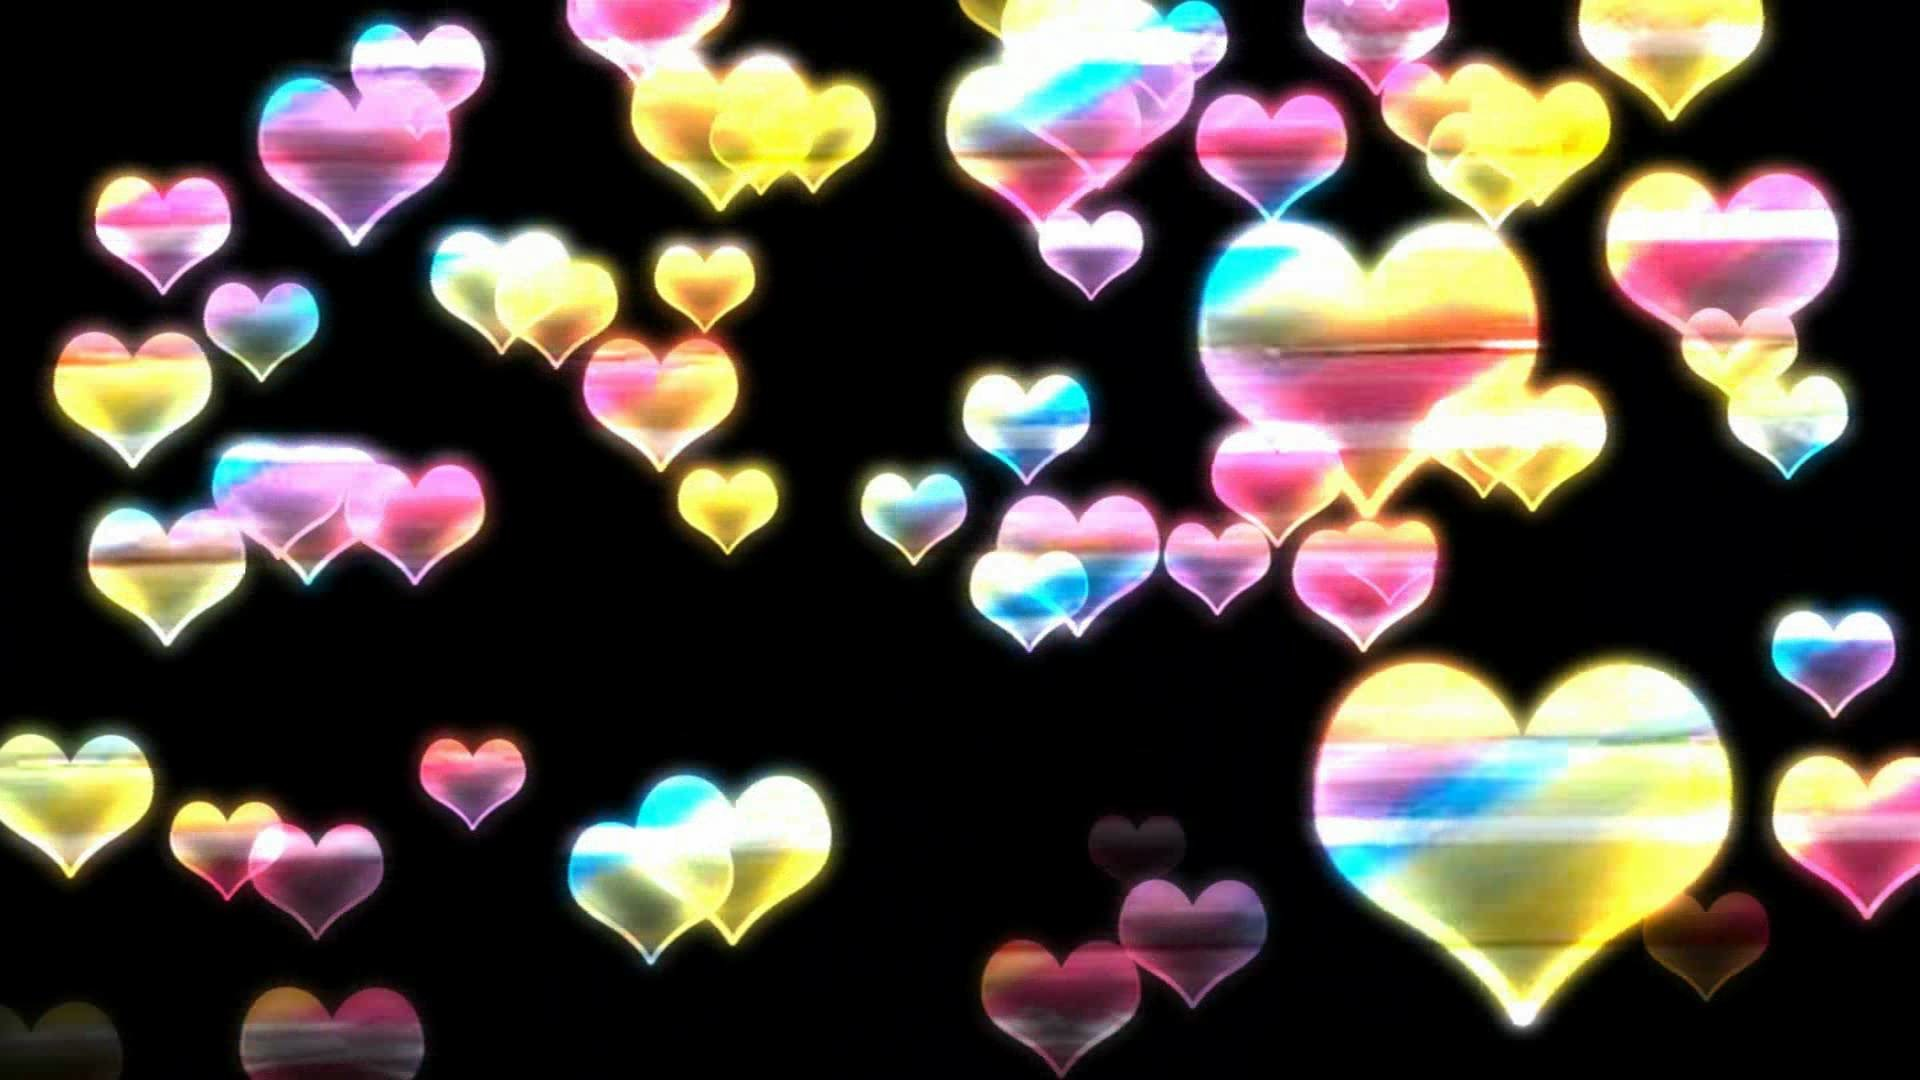 Rainbow love hearts backgrounds